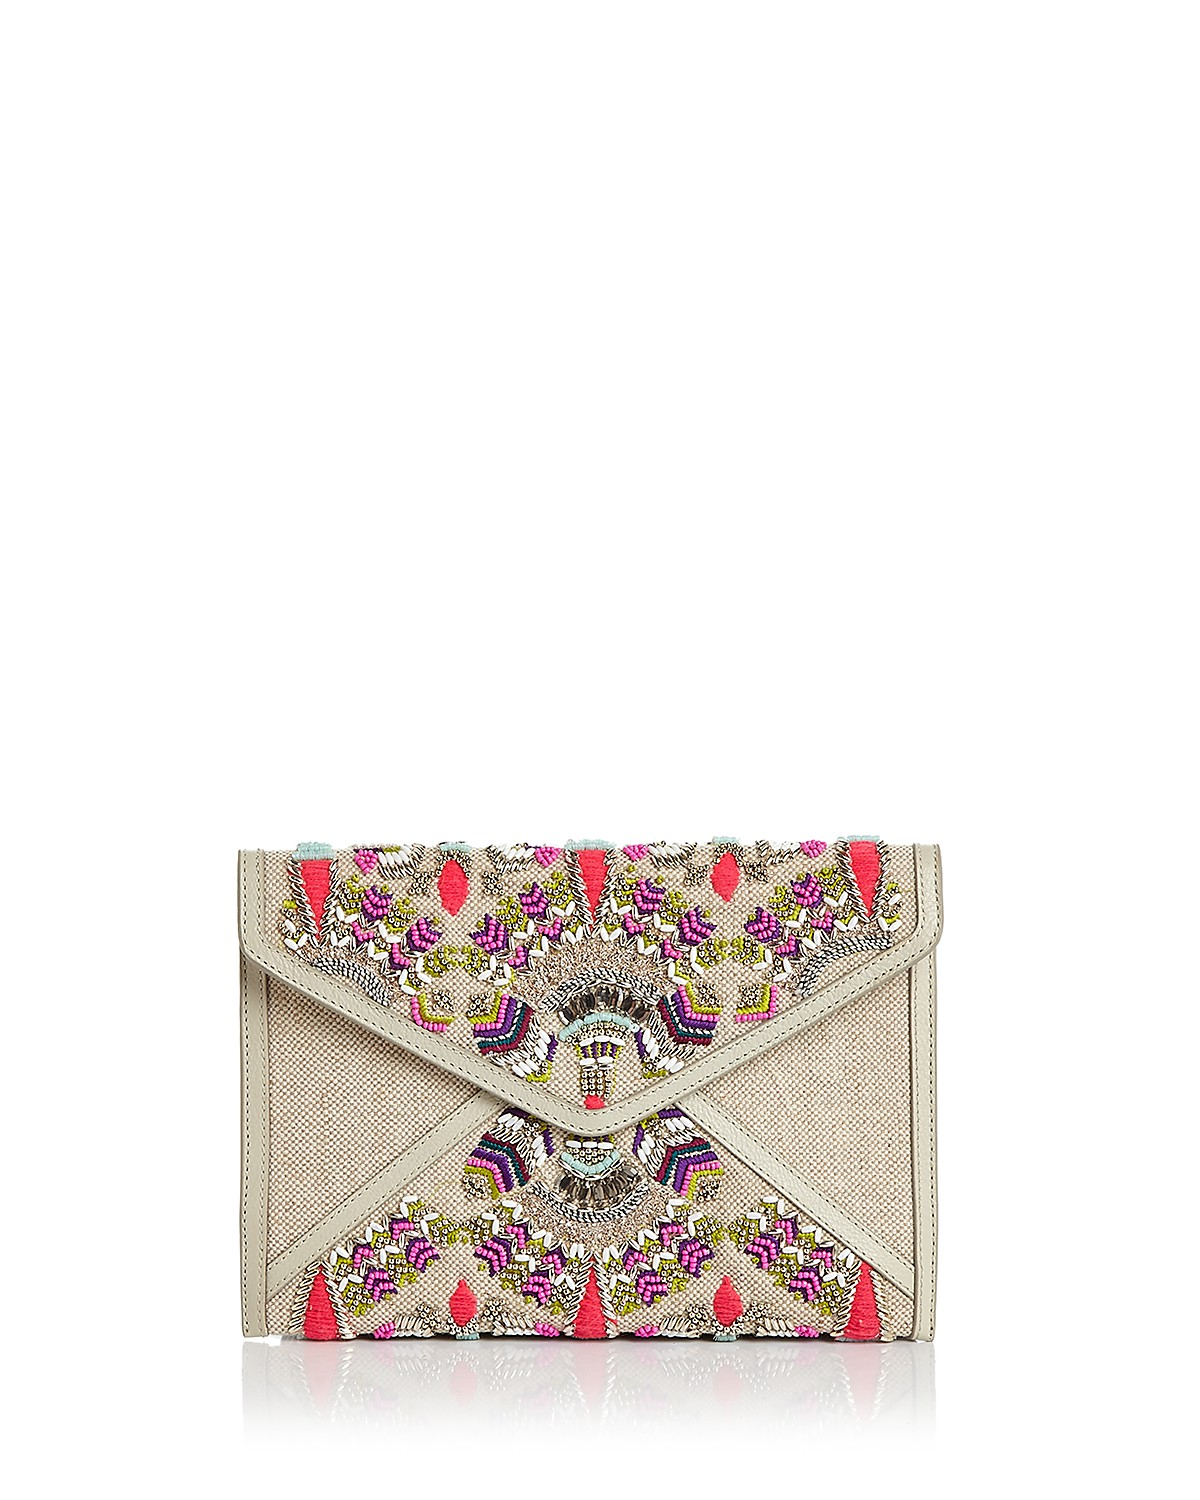 Outlet Best Place Clearance Enjoy Rebecca Minkoff Leo Beaded Clutch In China Cheap Online 100% Authentic For Sale rNGH0PV